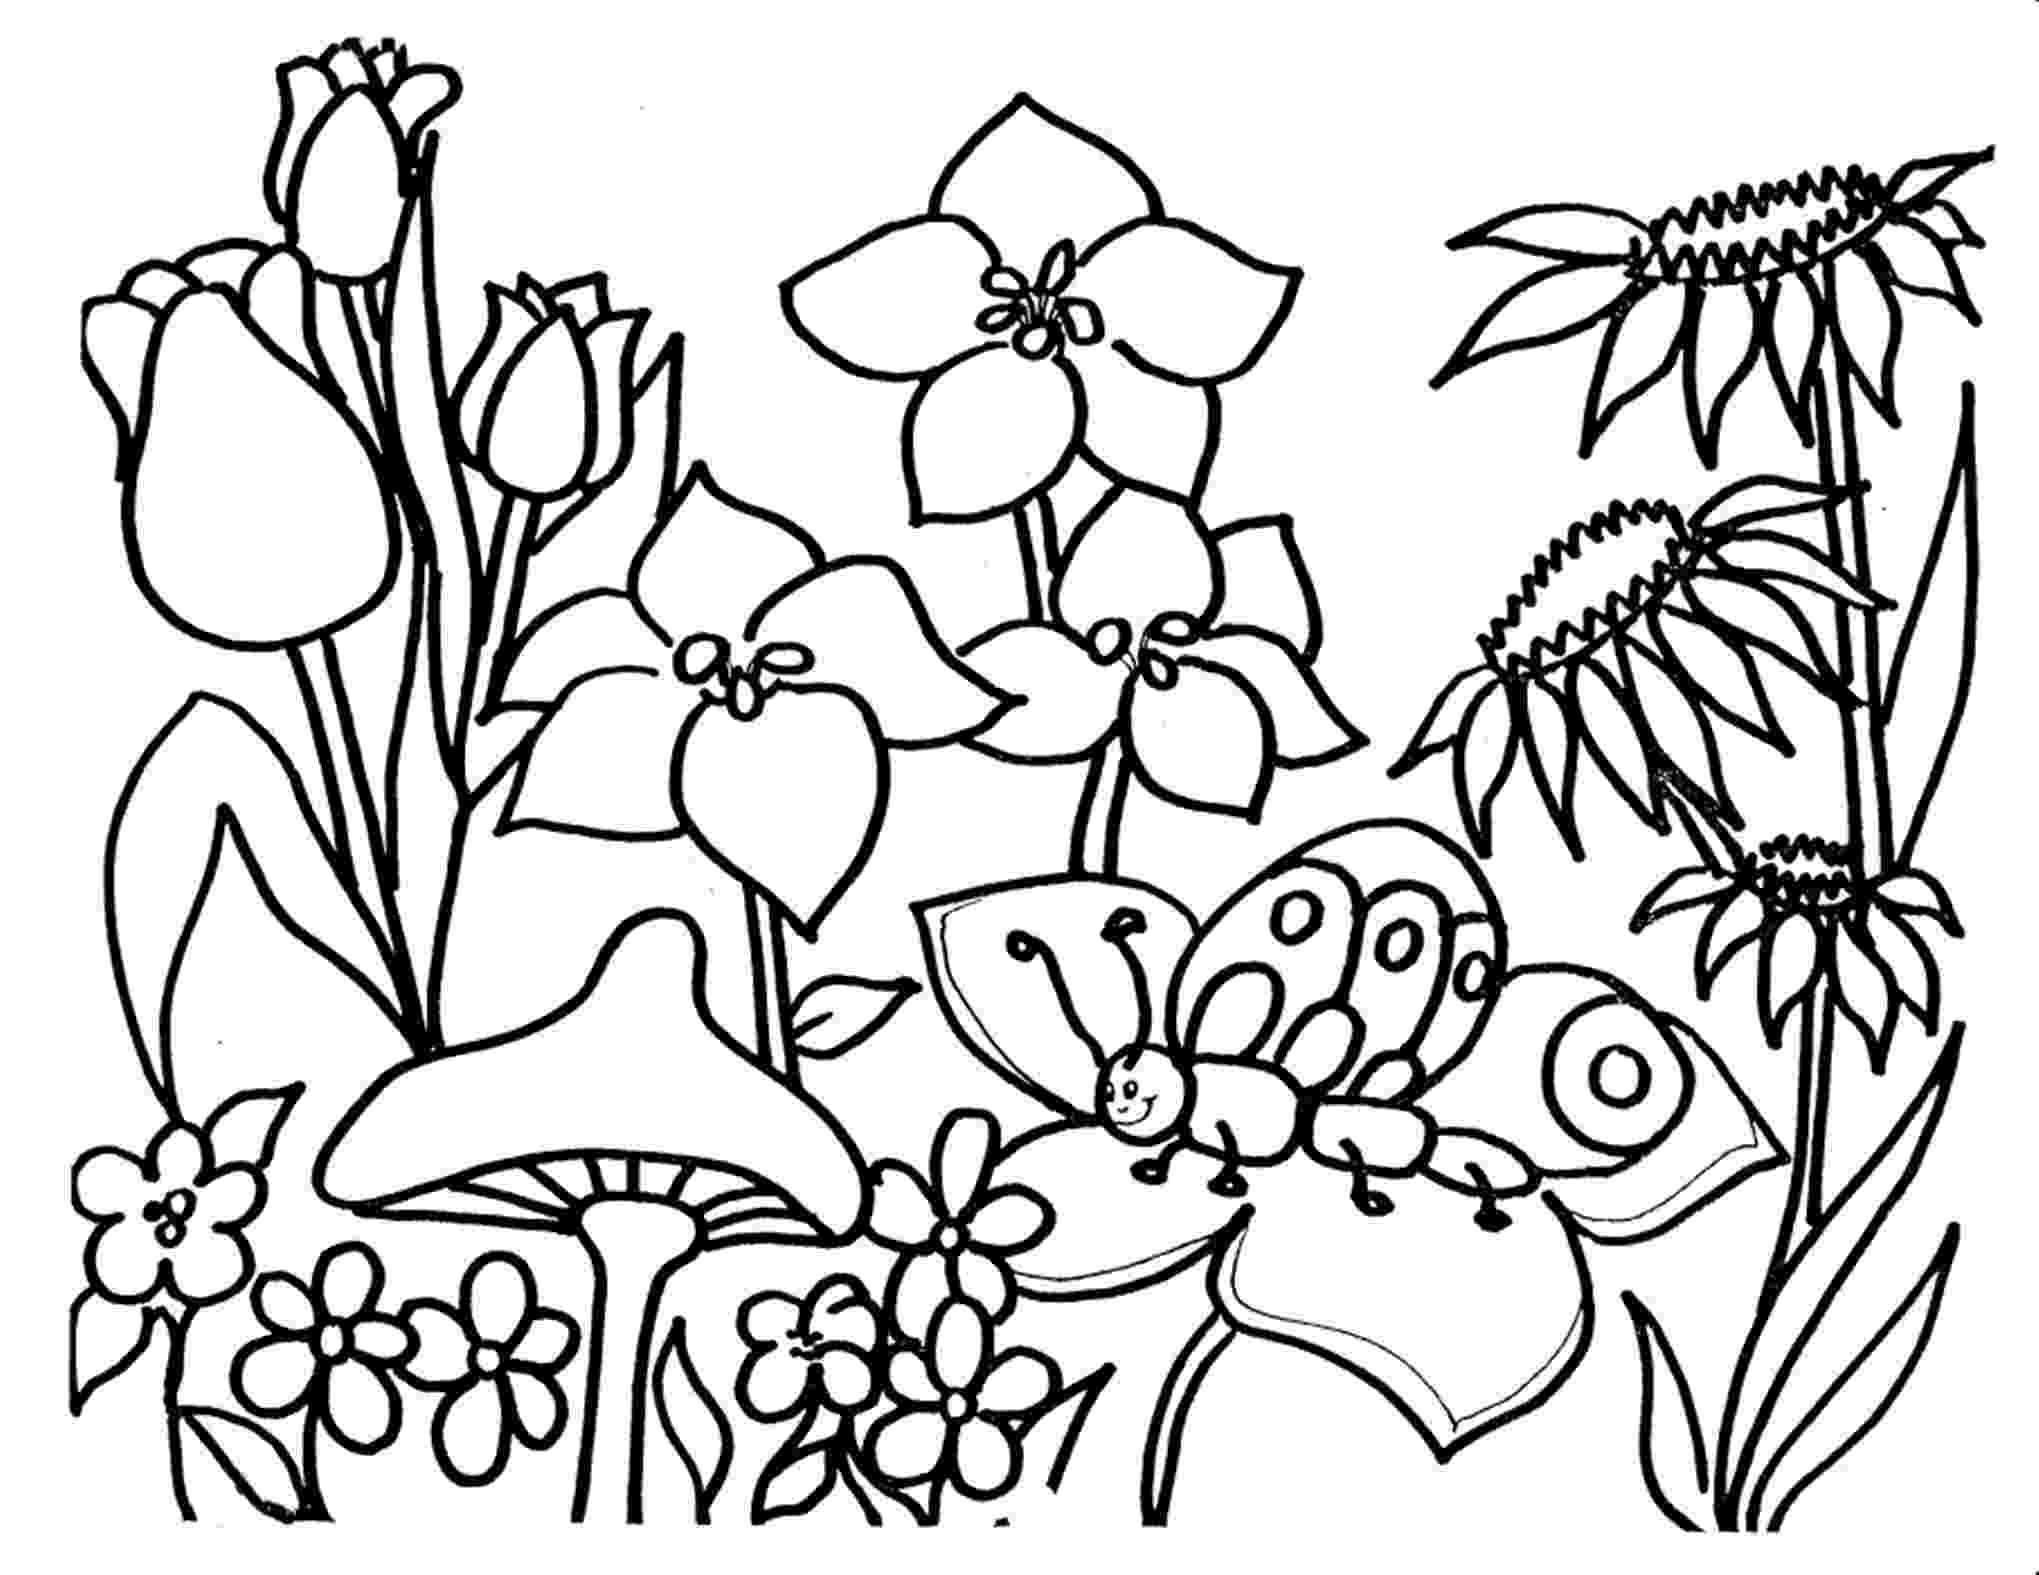 flower printable pictures free printable flower coloring pages for kids best pictures printable flower 1 1